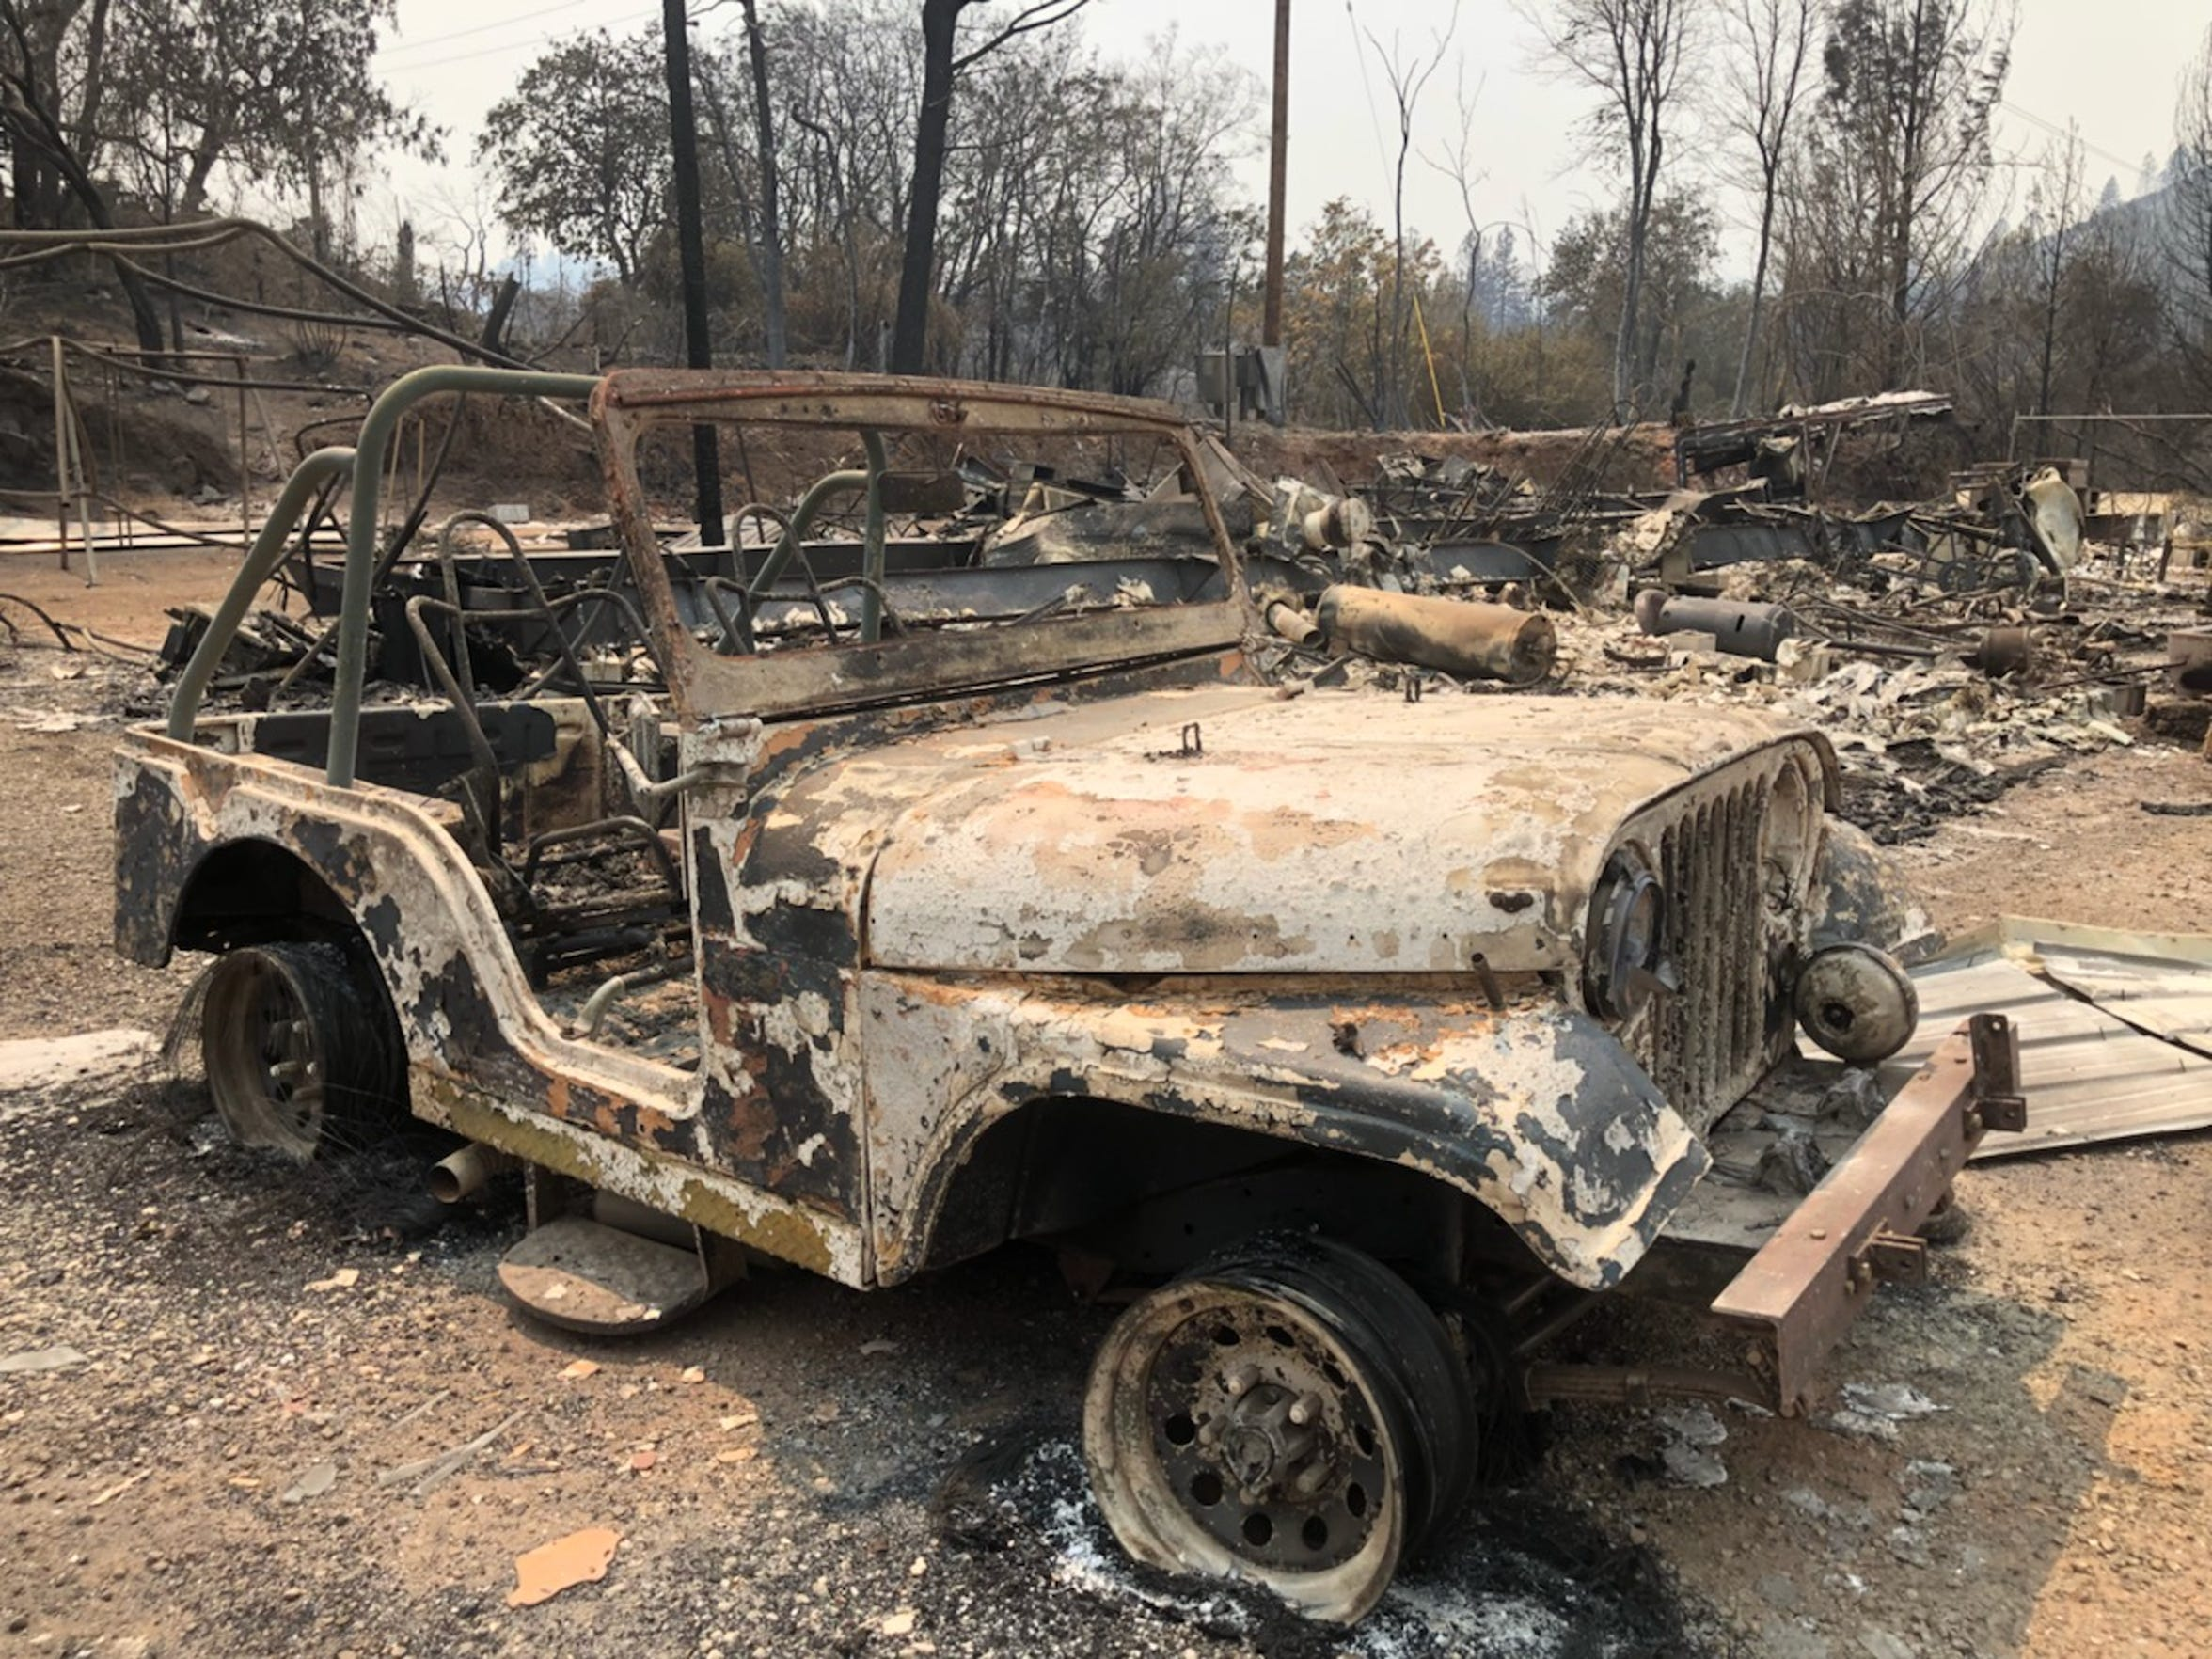 Mary Ann Sharp's pink Jeep after the Carr Fire.